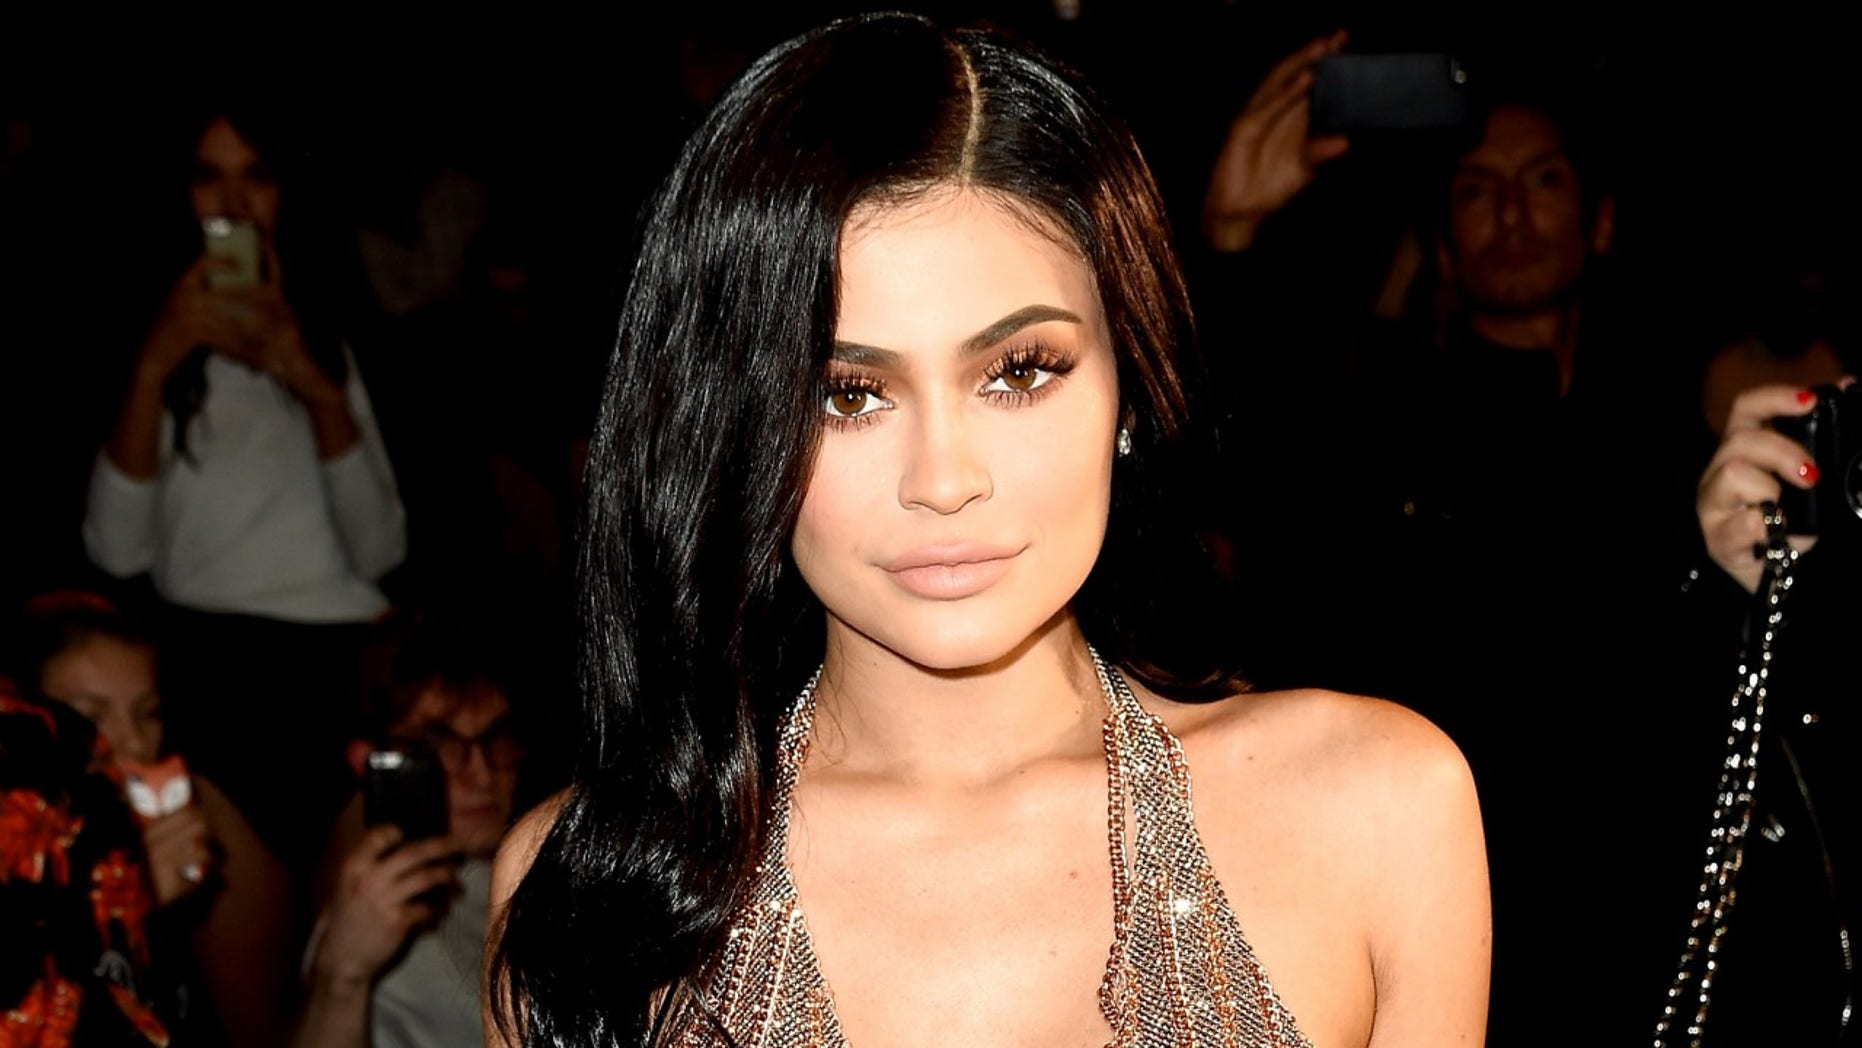 Kylie Jenner shared new photos of her daughter Stormi on Instagram.